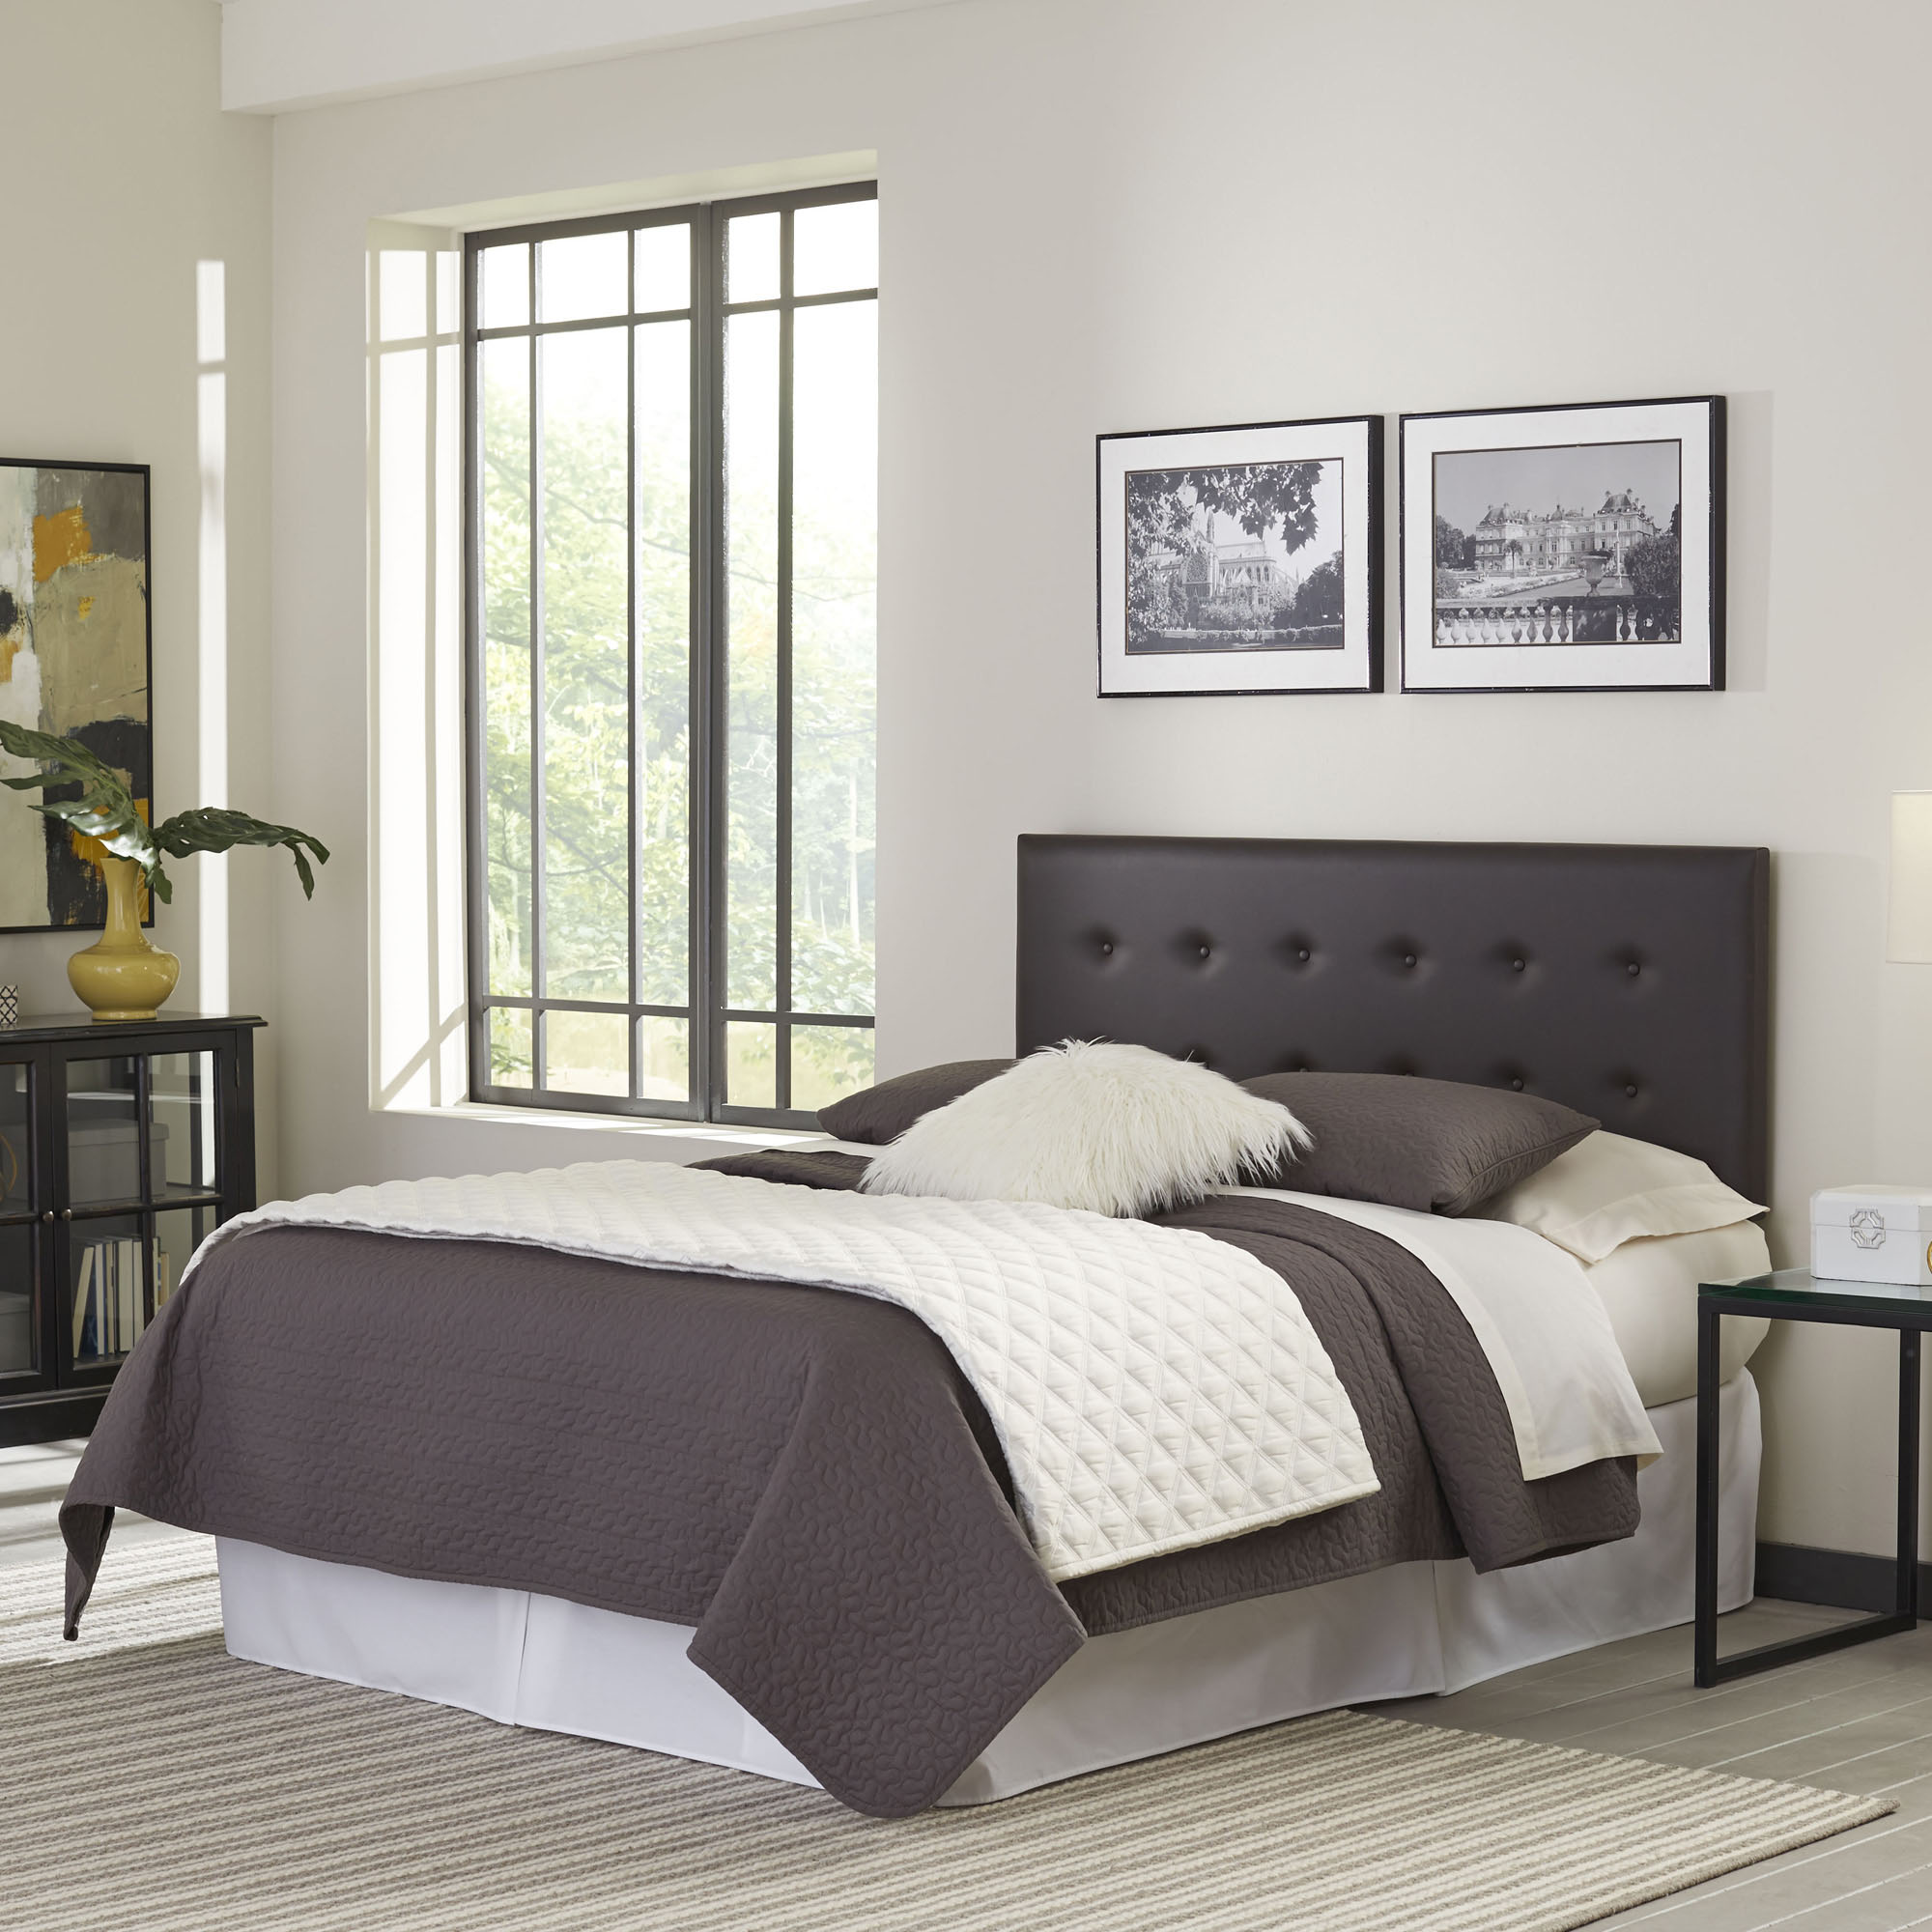 Franklin Button-Tuft Faux Leather Upholstered Headboard with Adjustable Height, Mocha Finish, Twin